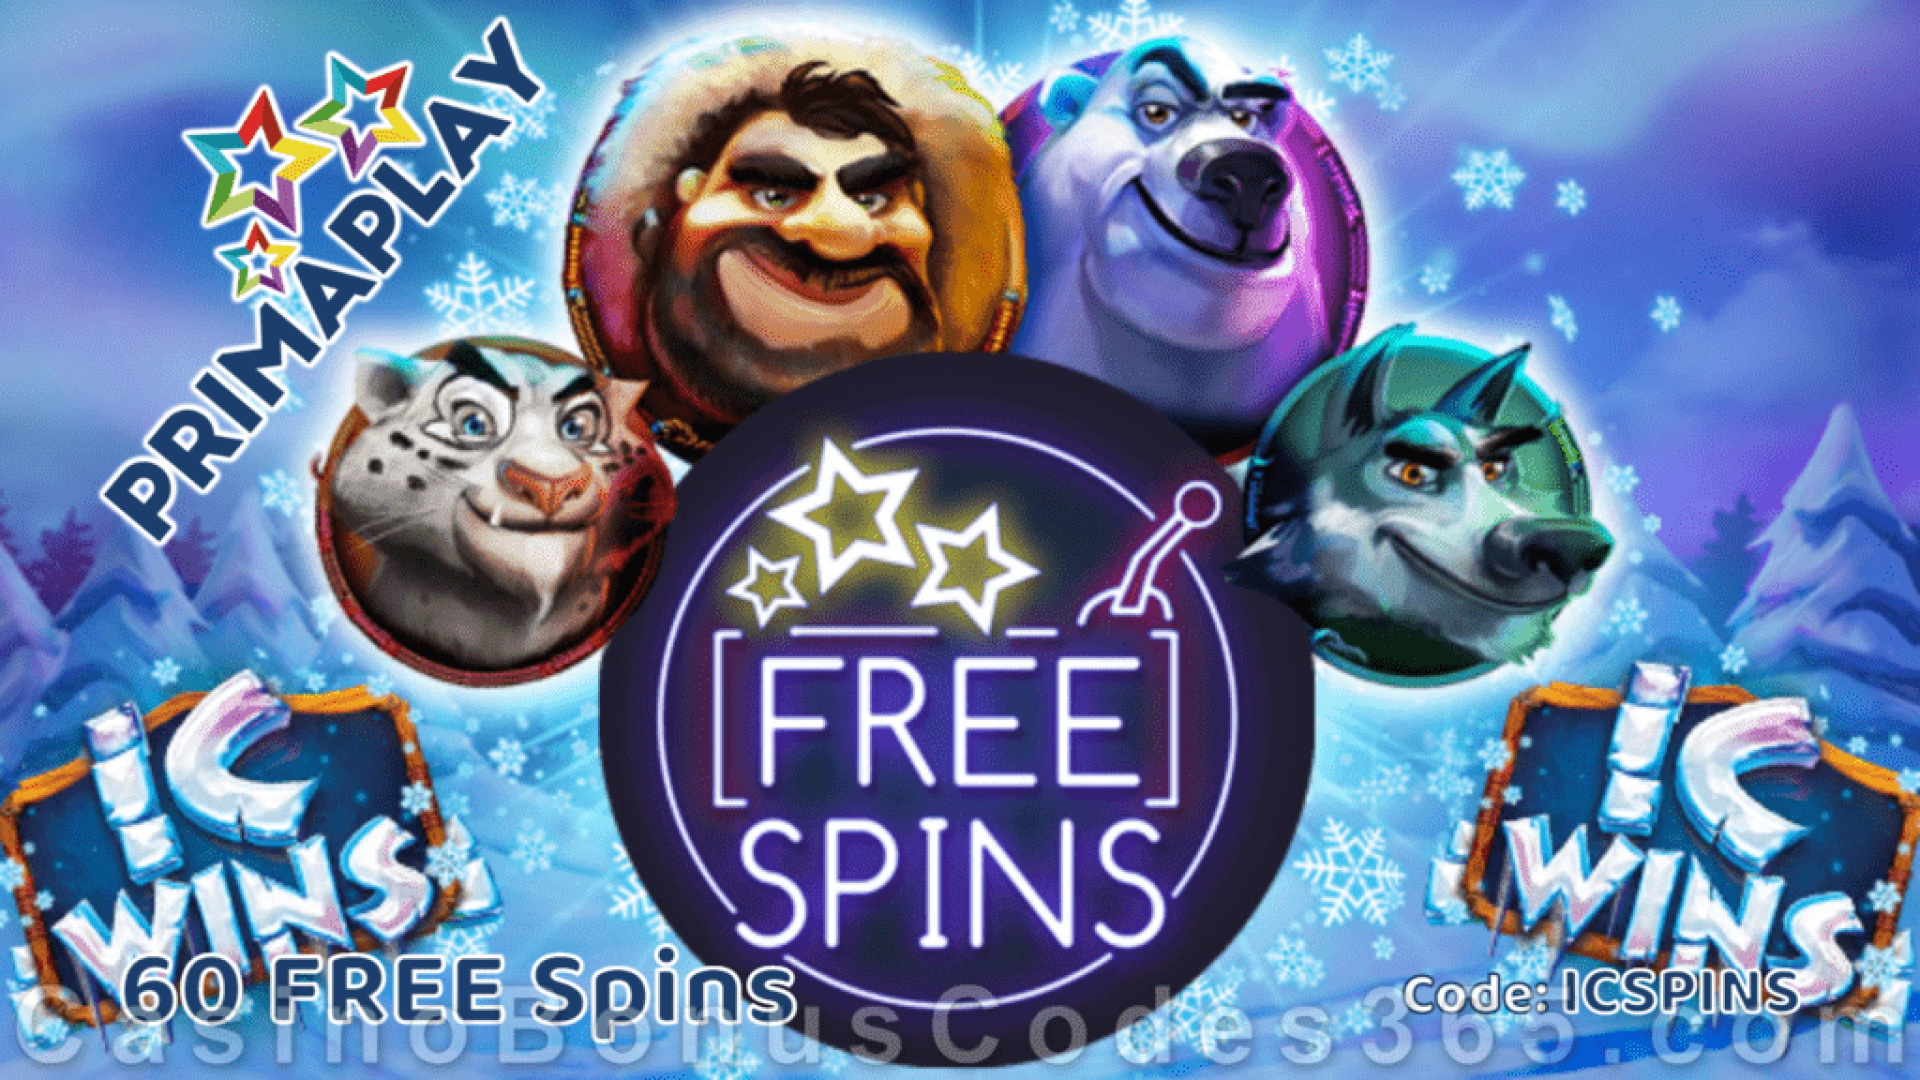 Prima Play IC Wins 60 FREE Spins Special New RTG Game Deal